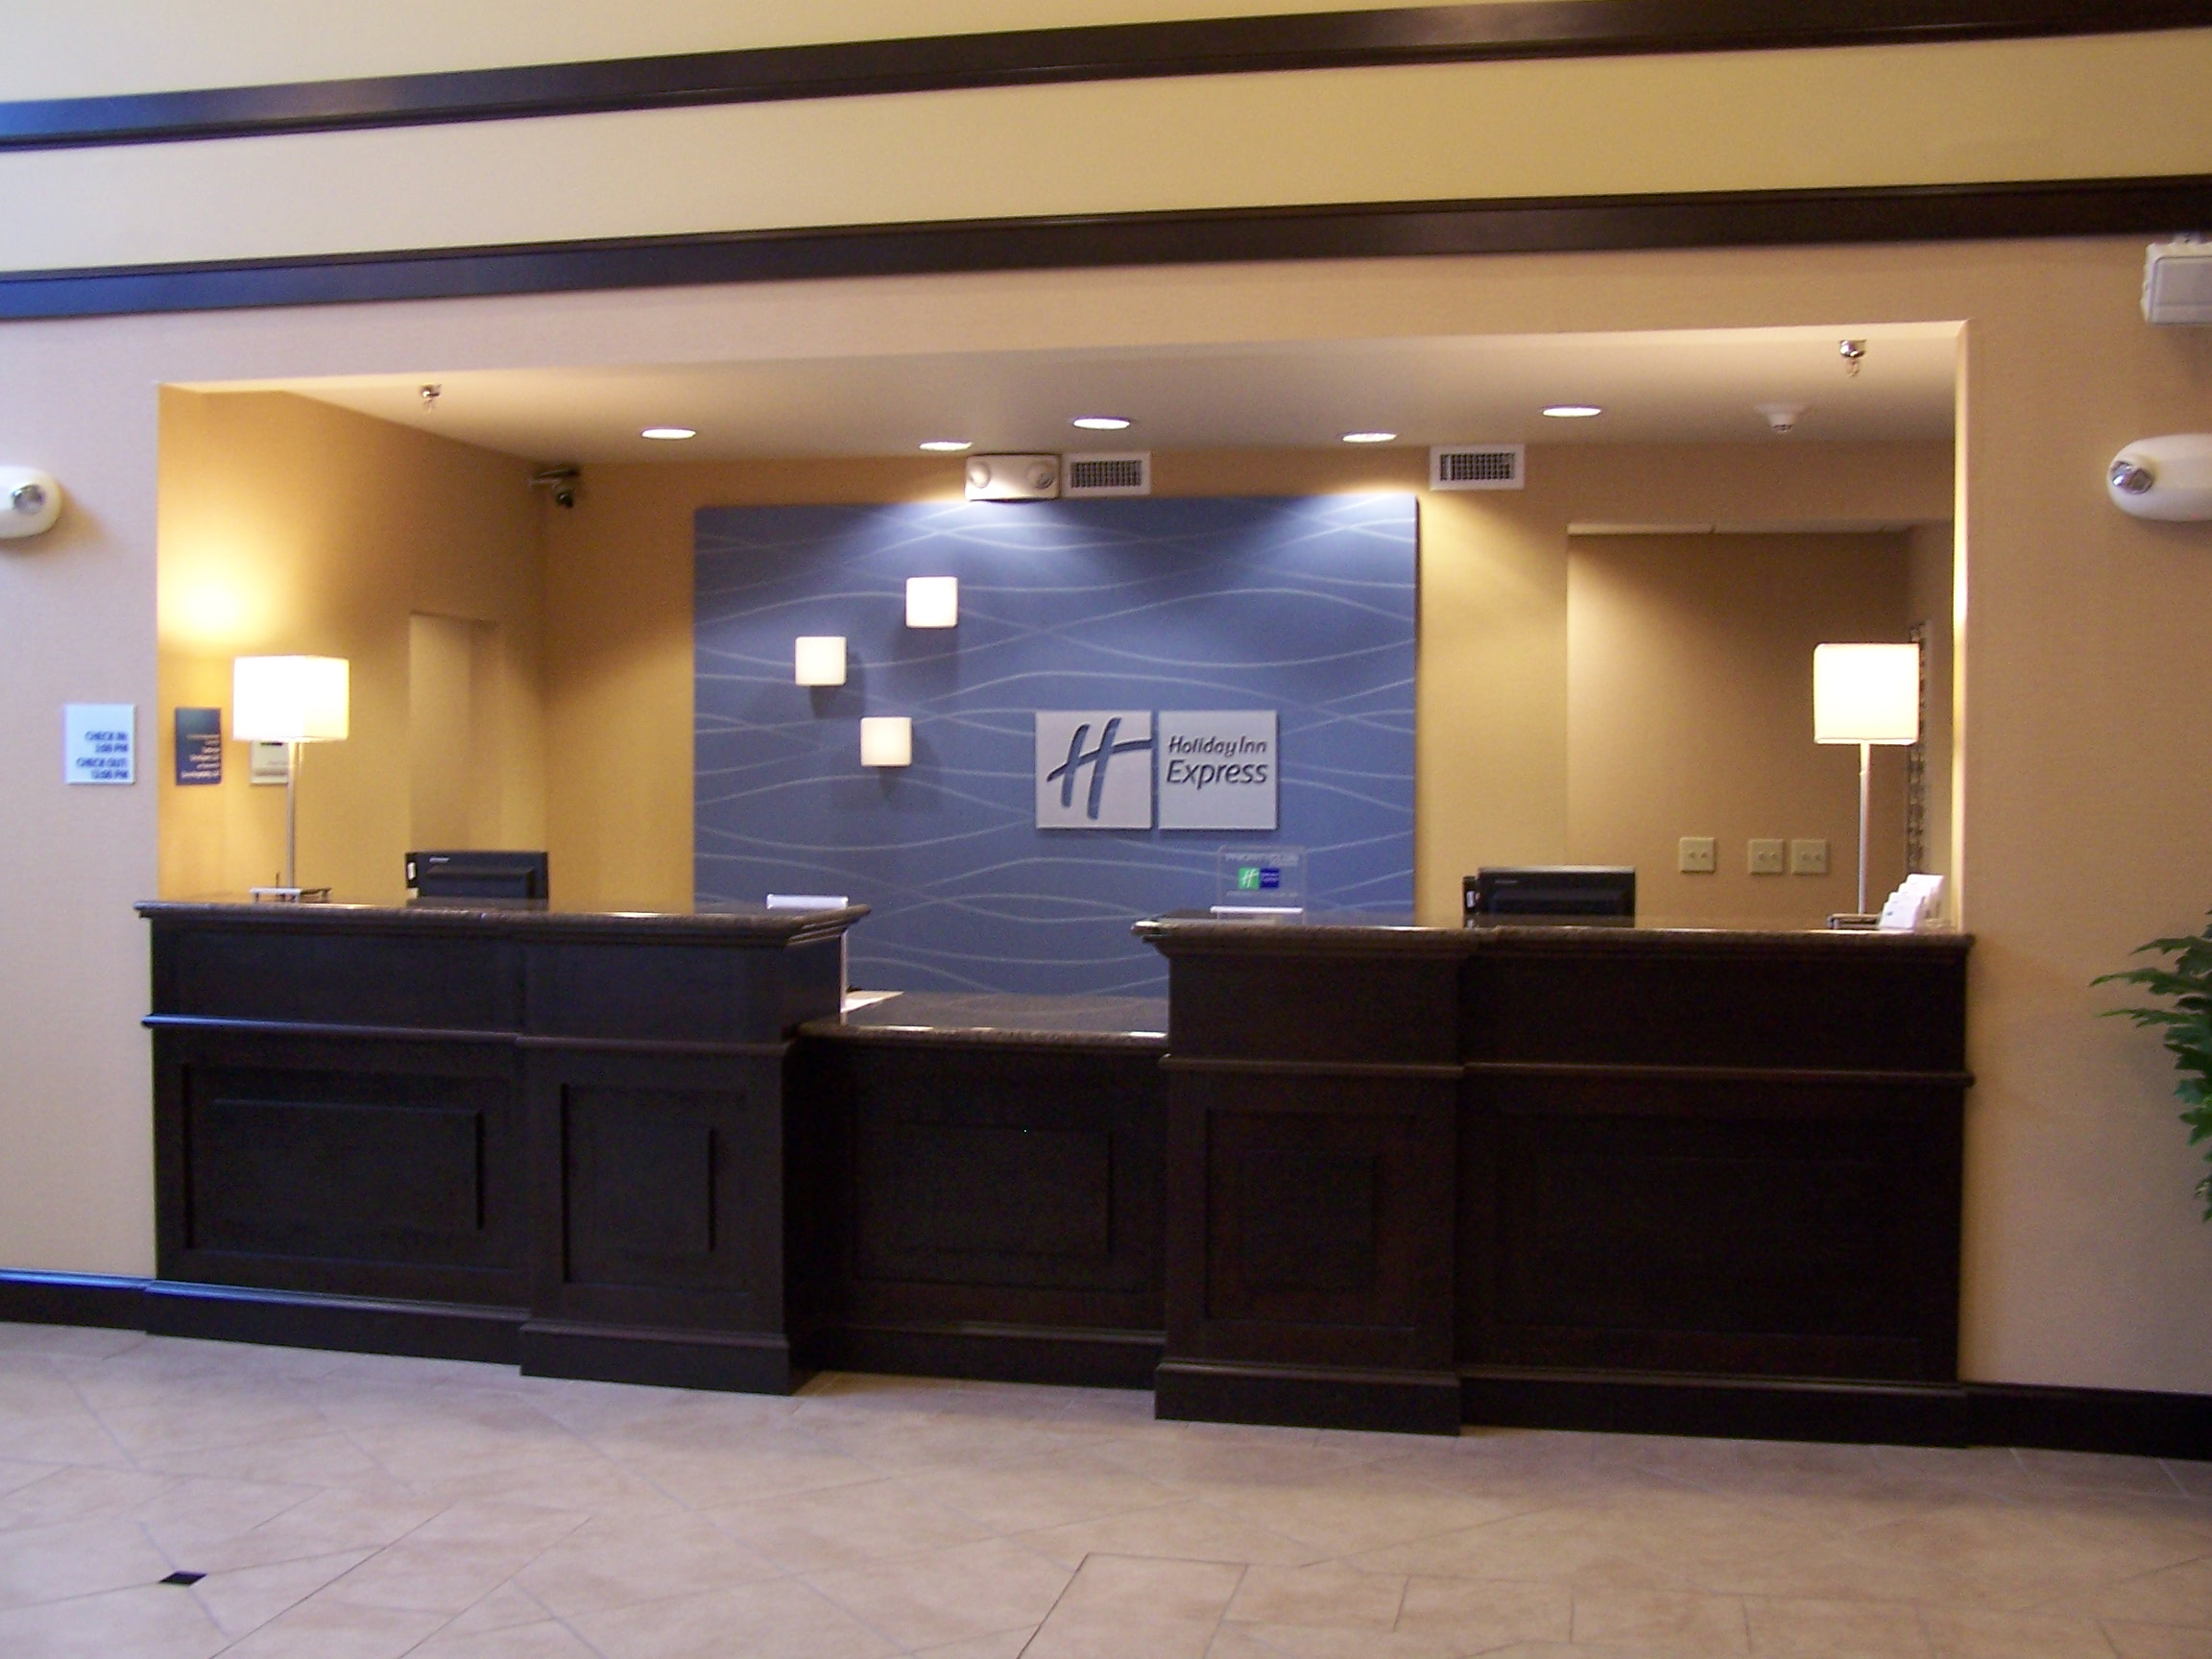 Front desk area of the Holiday Inn Express in Dublin, OH